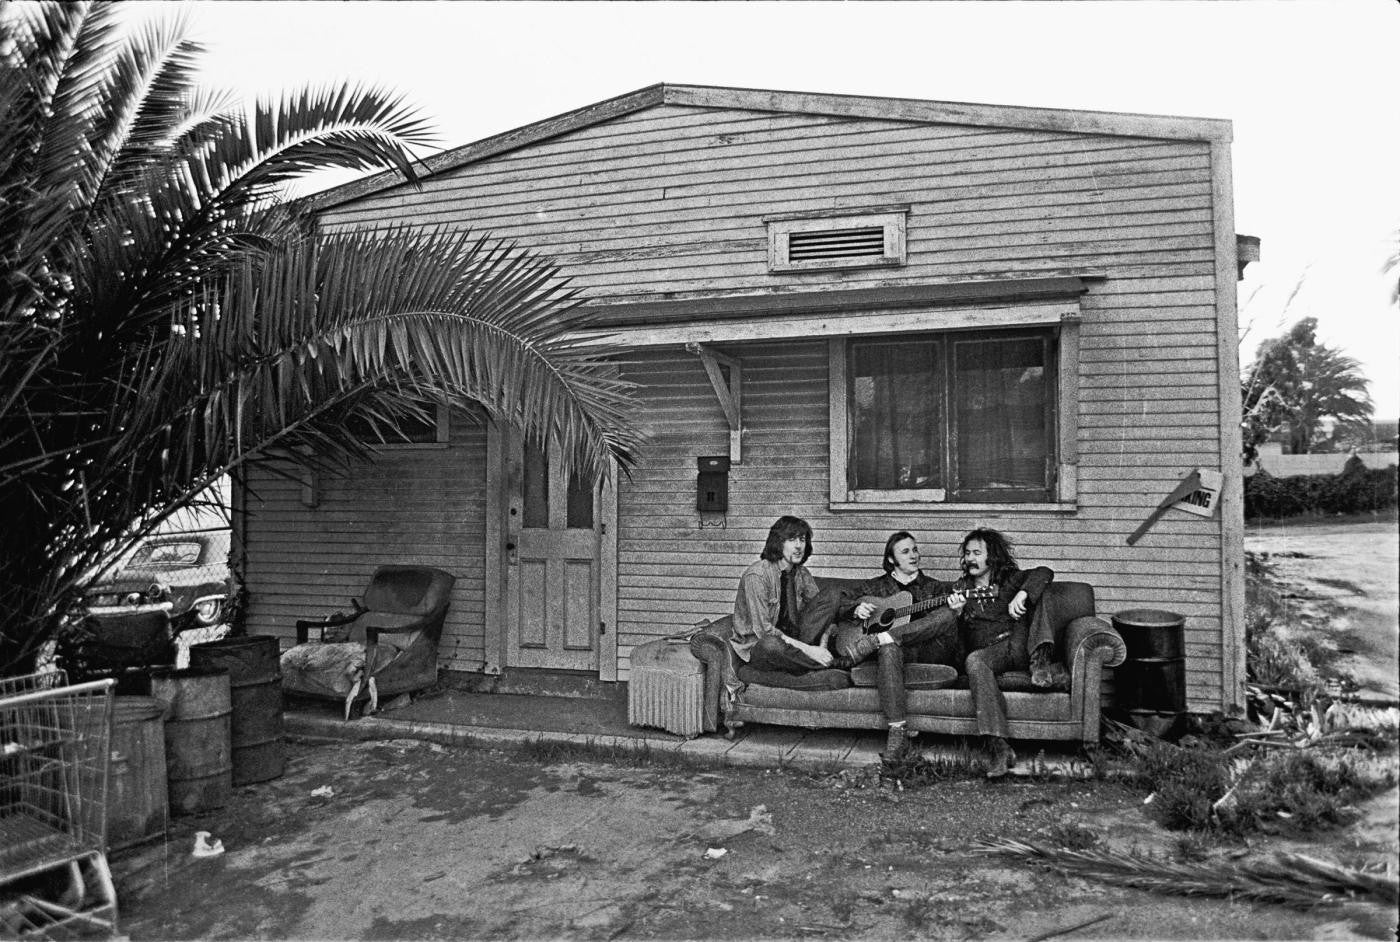 the_infamous_disappearing_house_csn_1969-chenry_diltz